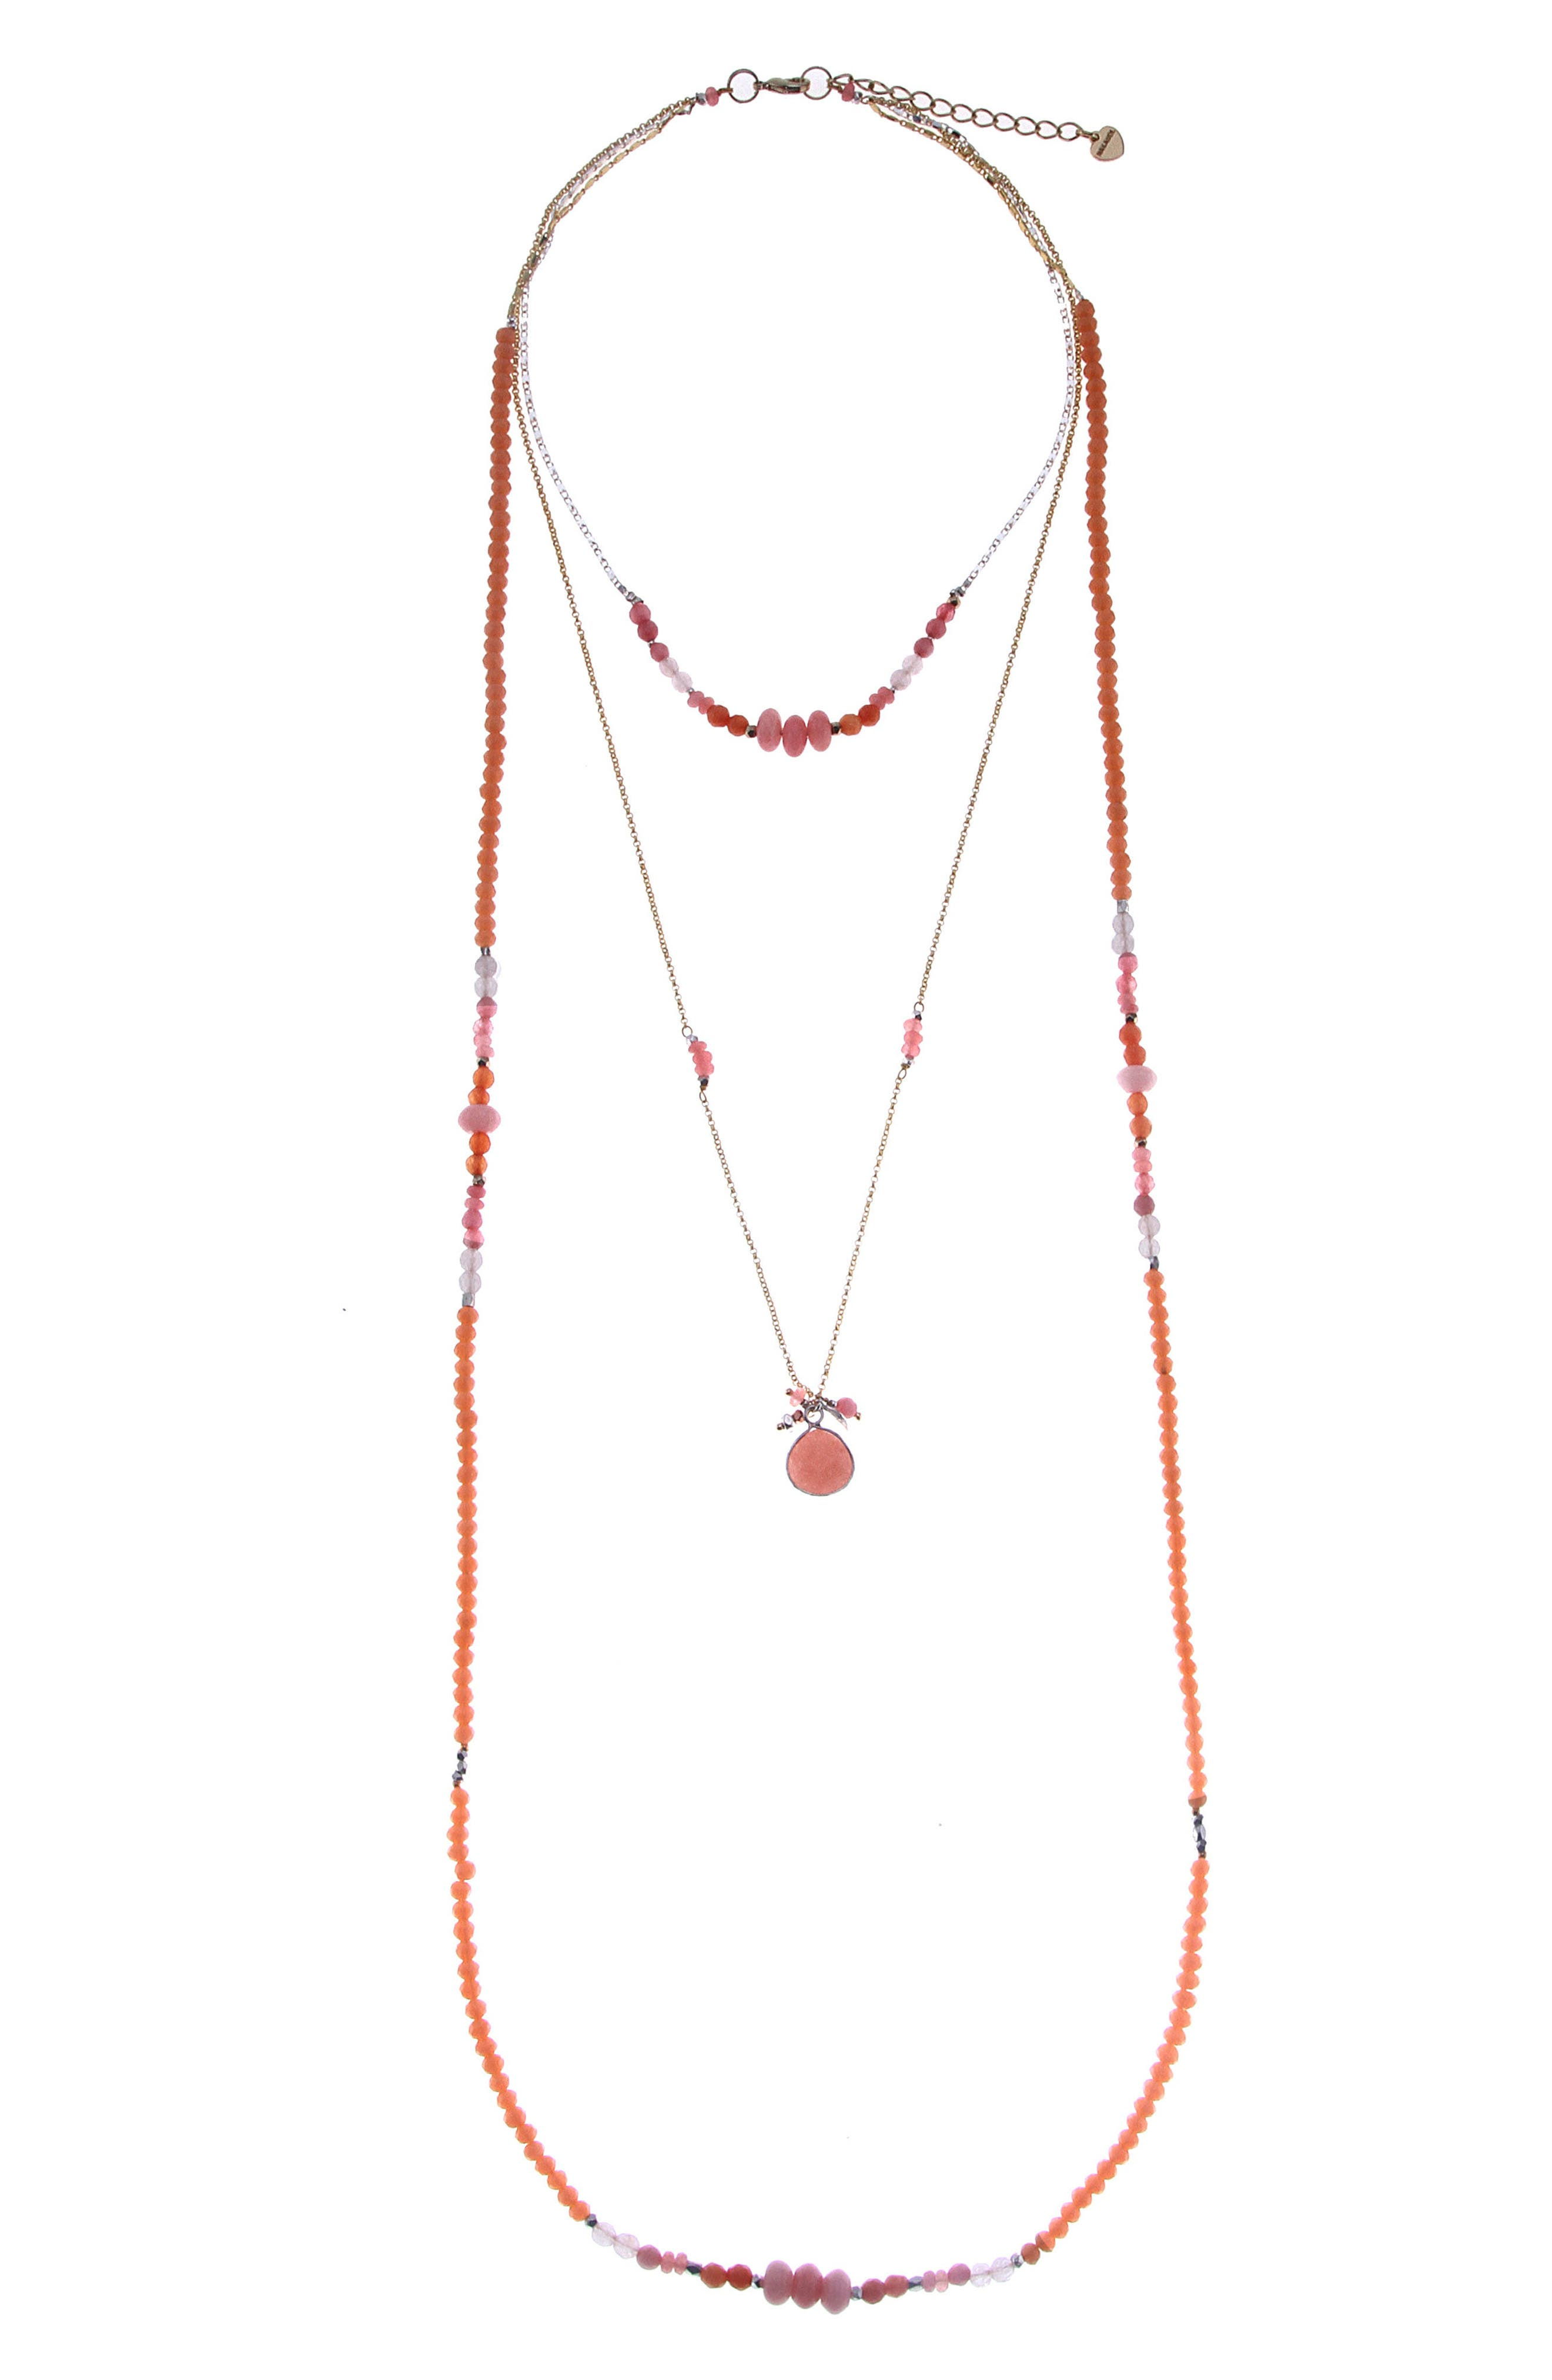 Alternate Image 1 Selected - Nakamol Design Layered Crystal & Drusy Necklace